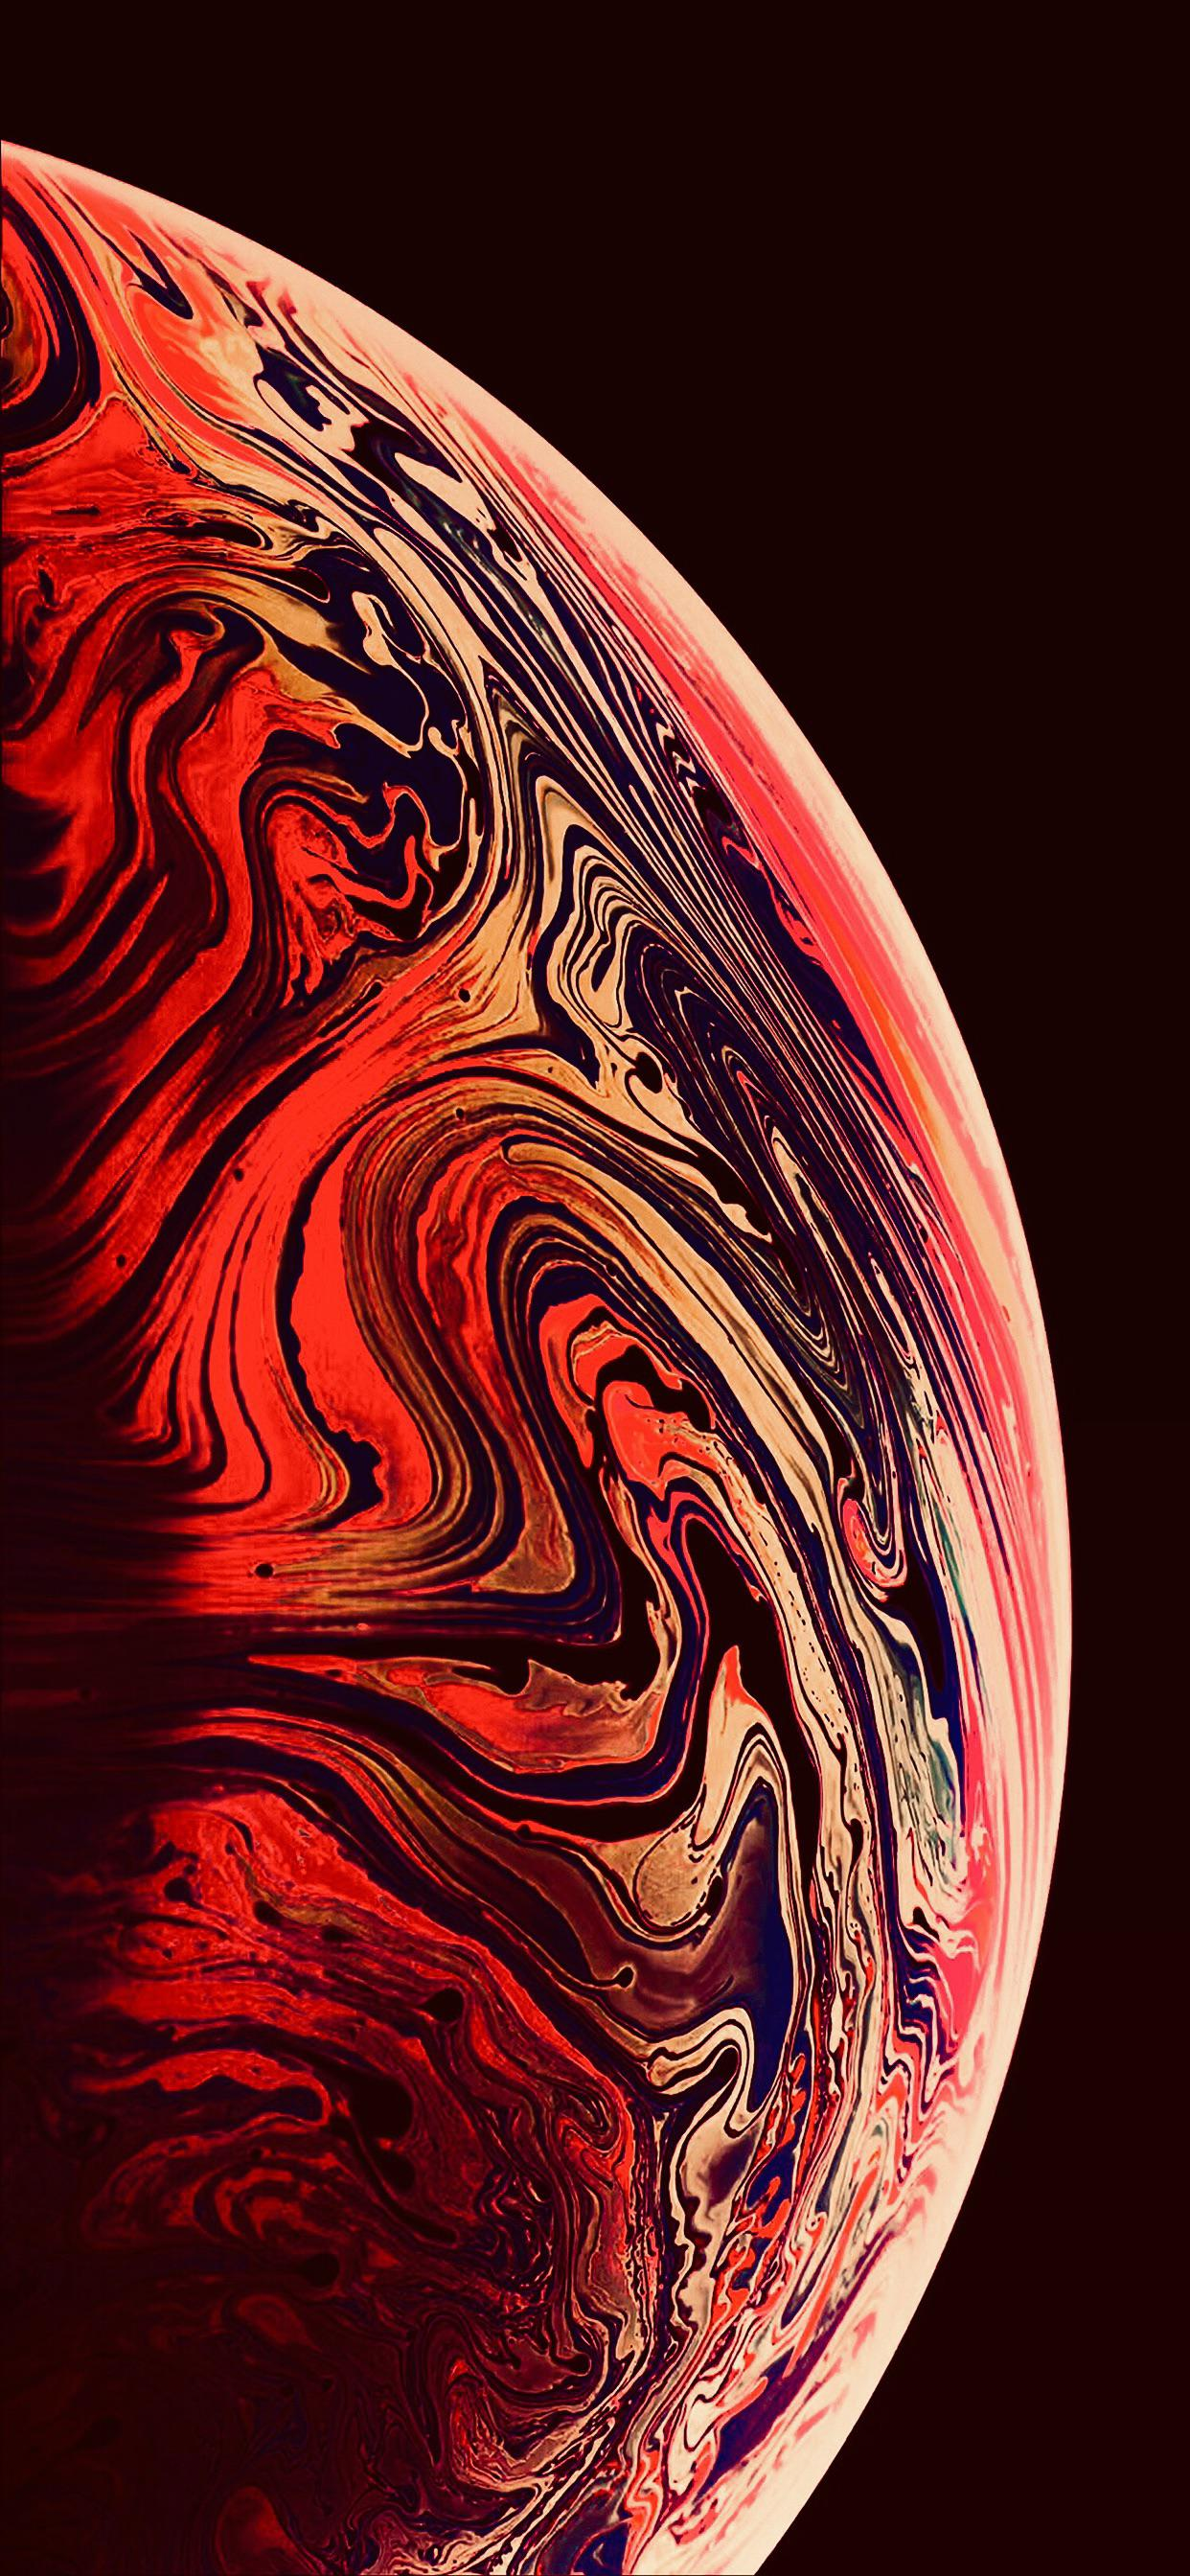 Iphone Xr Wallpaper Red : iphone, wallpaper, Don't, About, Guys,, Enjoy, Bubble, Wallpaper., Found, Little, Editing, Really, Using